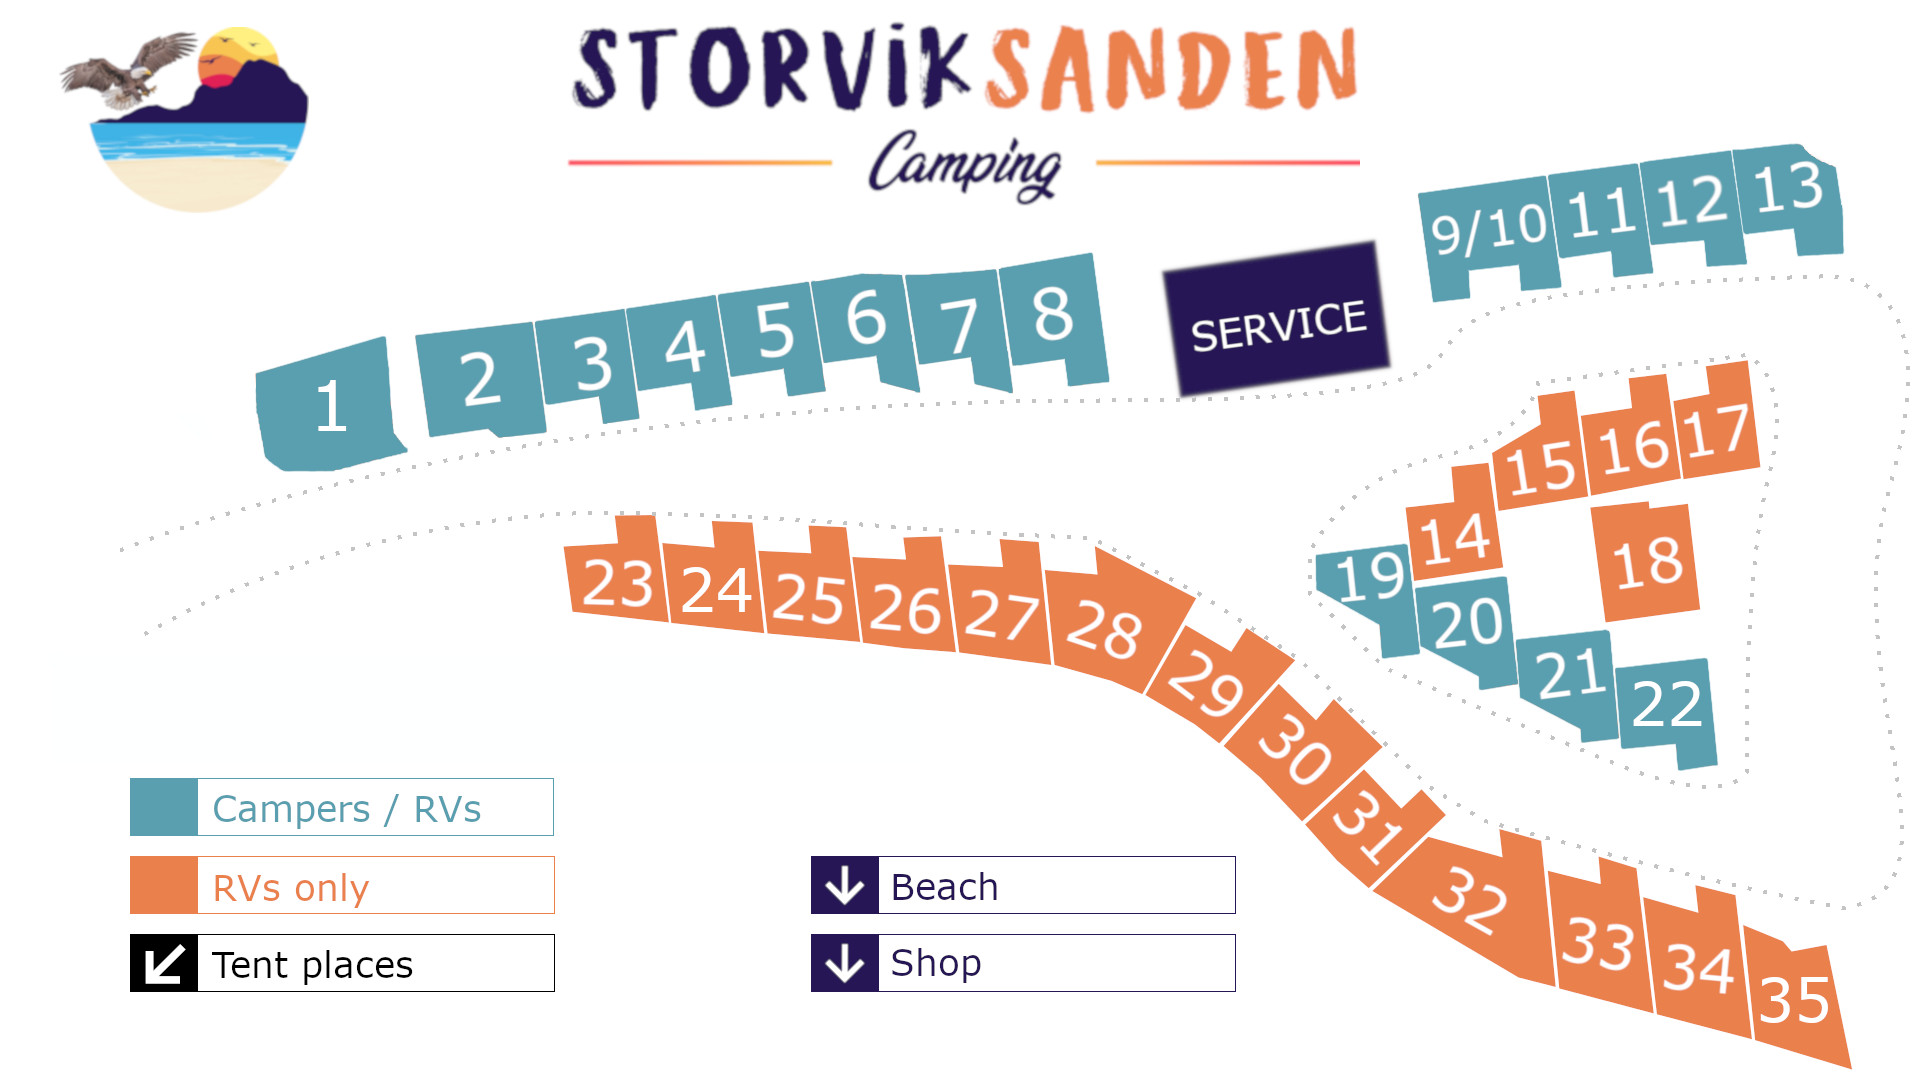 Map over Storviksanden Camping